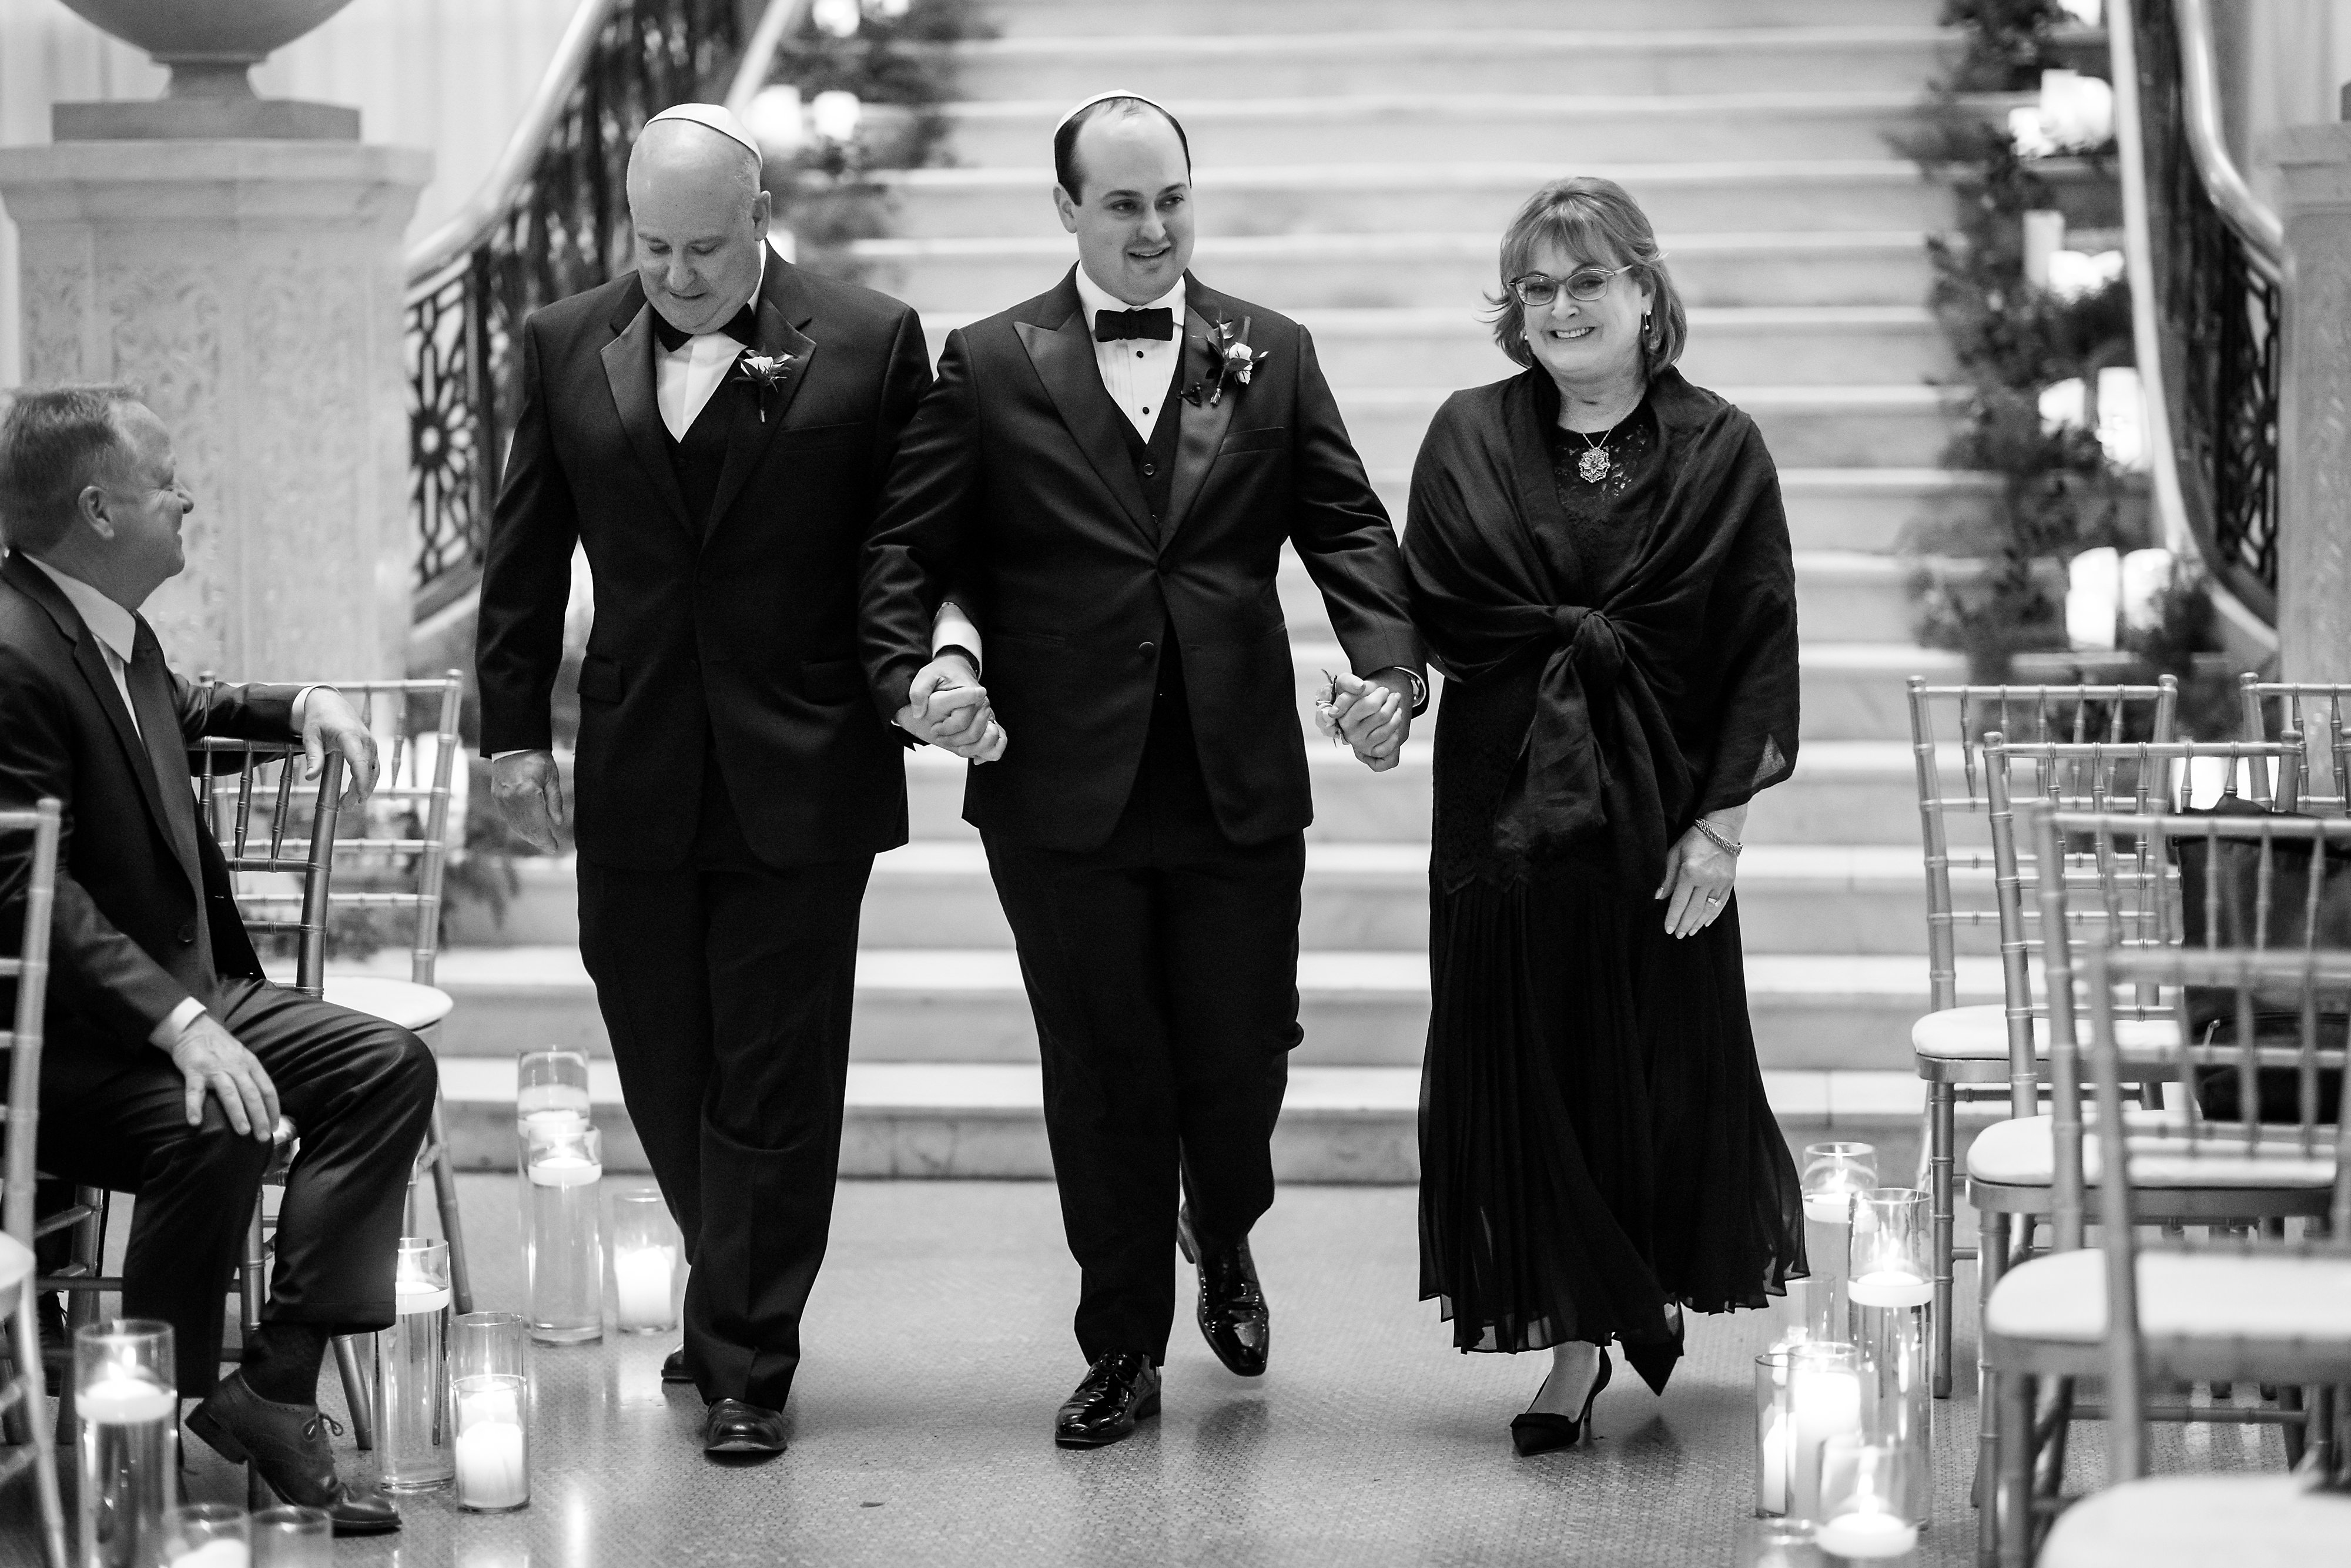 Groom walks in with parents during wedding ceremony at the Rookery Building in Chicago